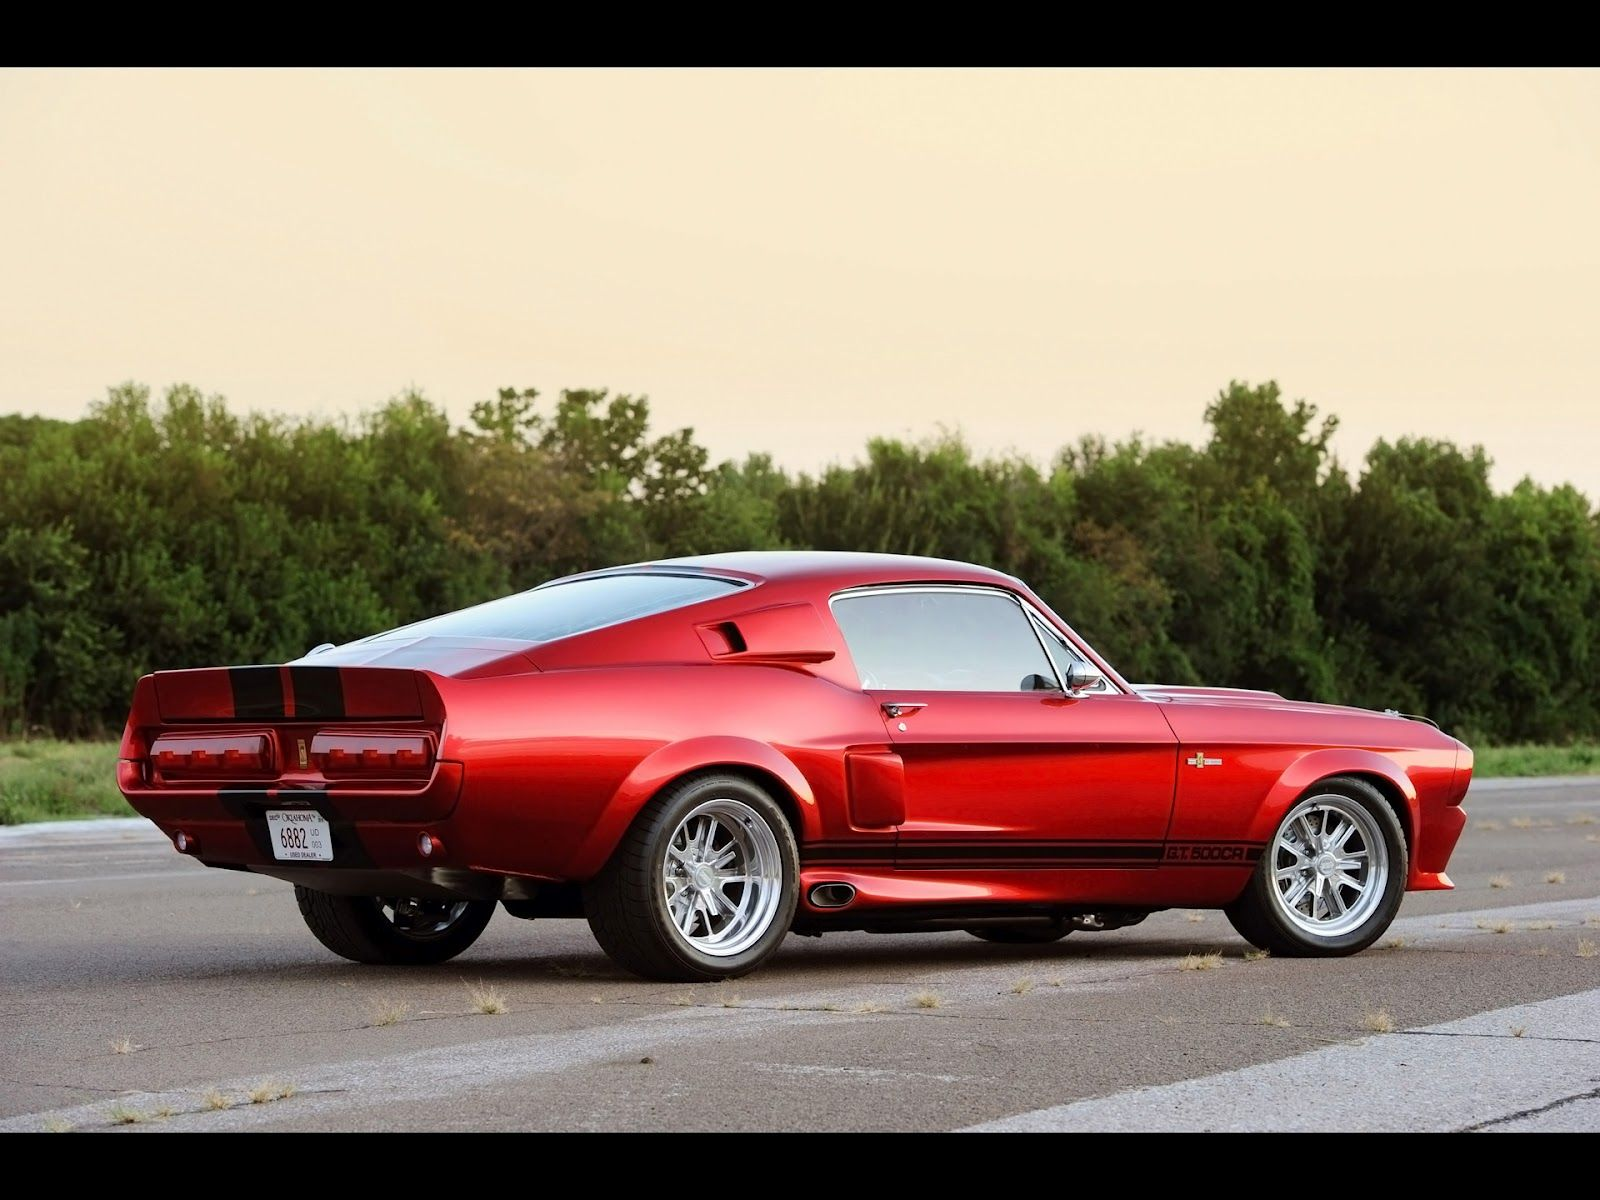 Ford Mustang Gt500 Allegro